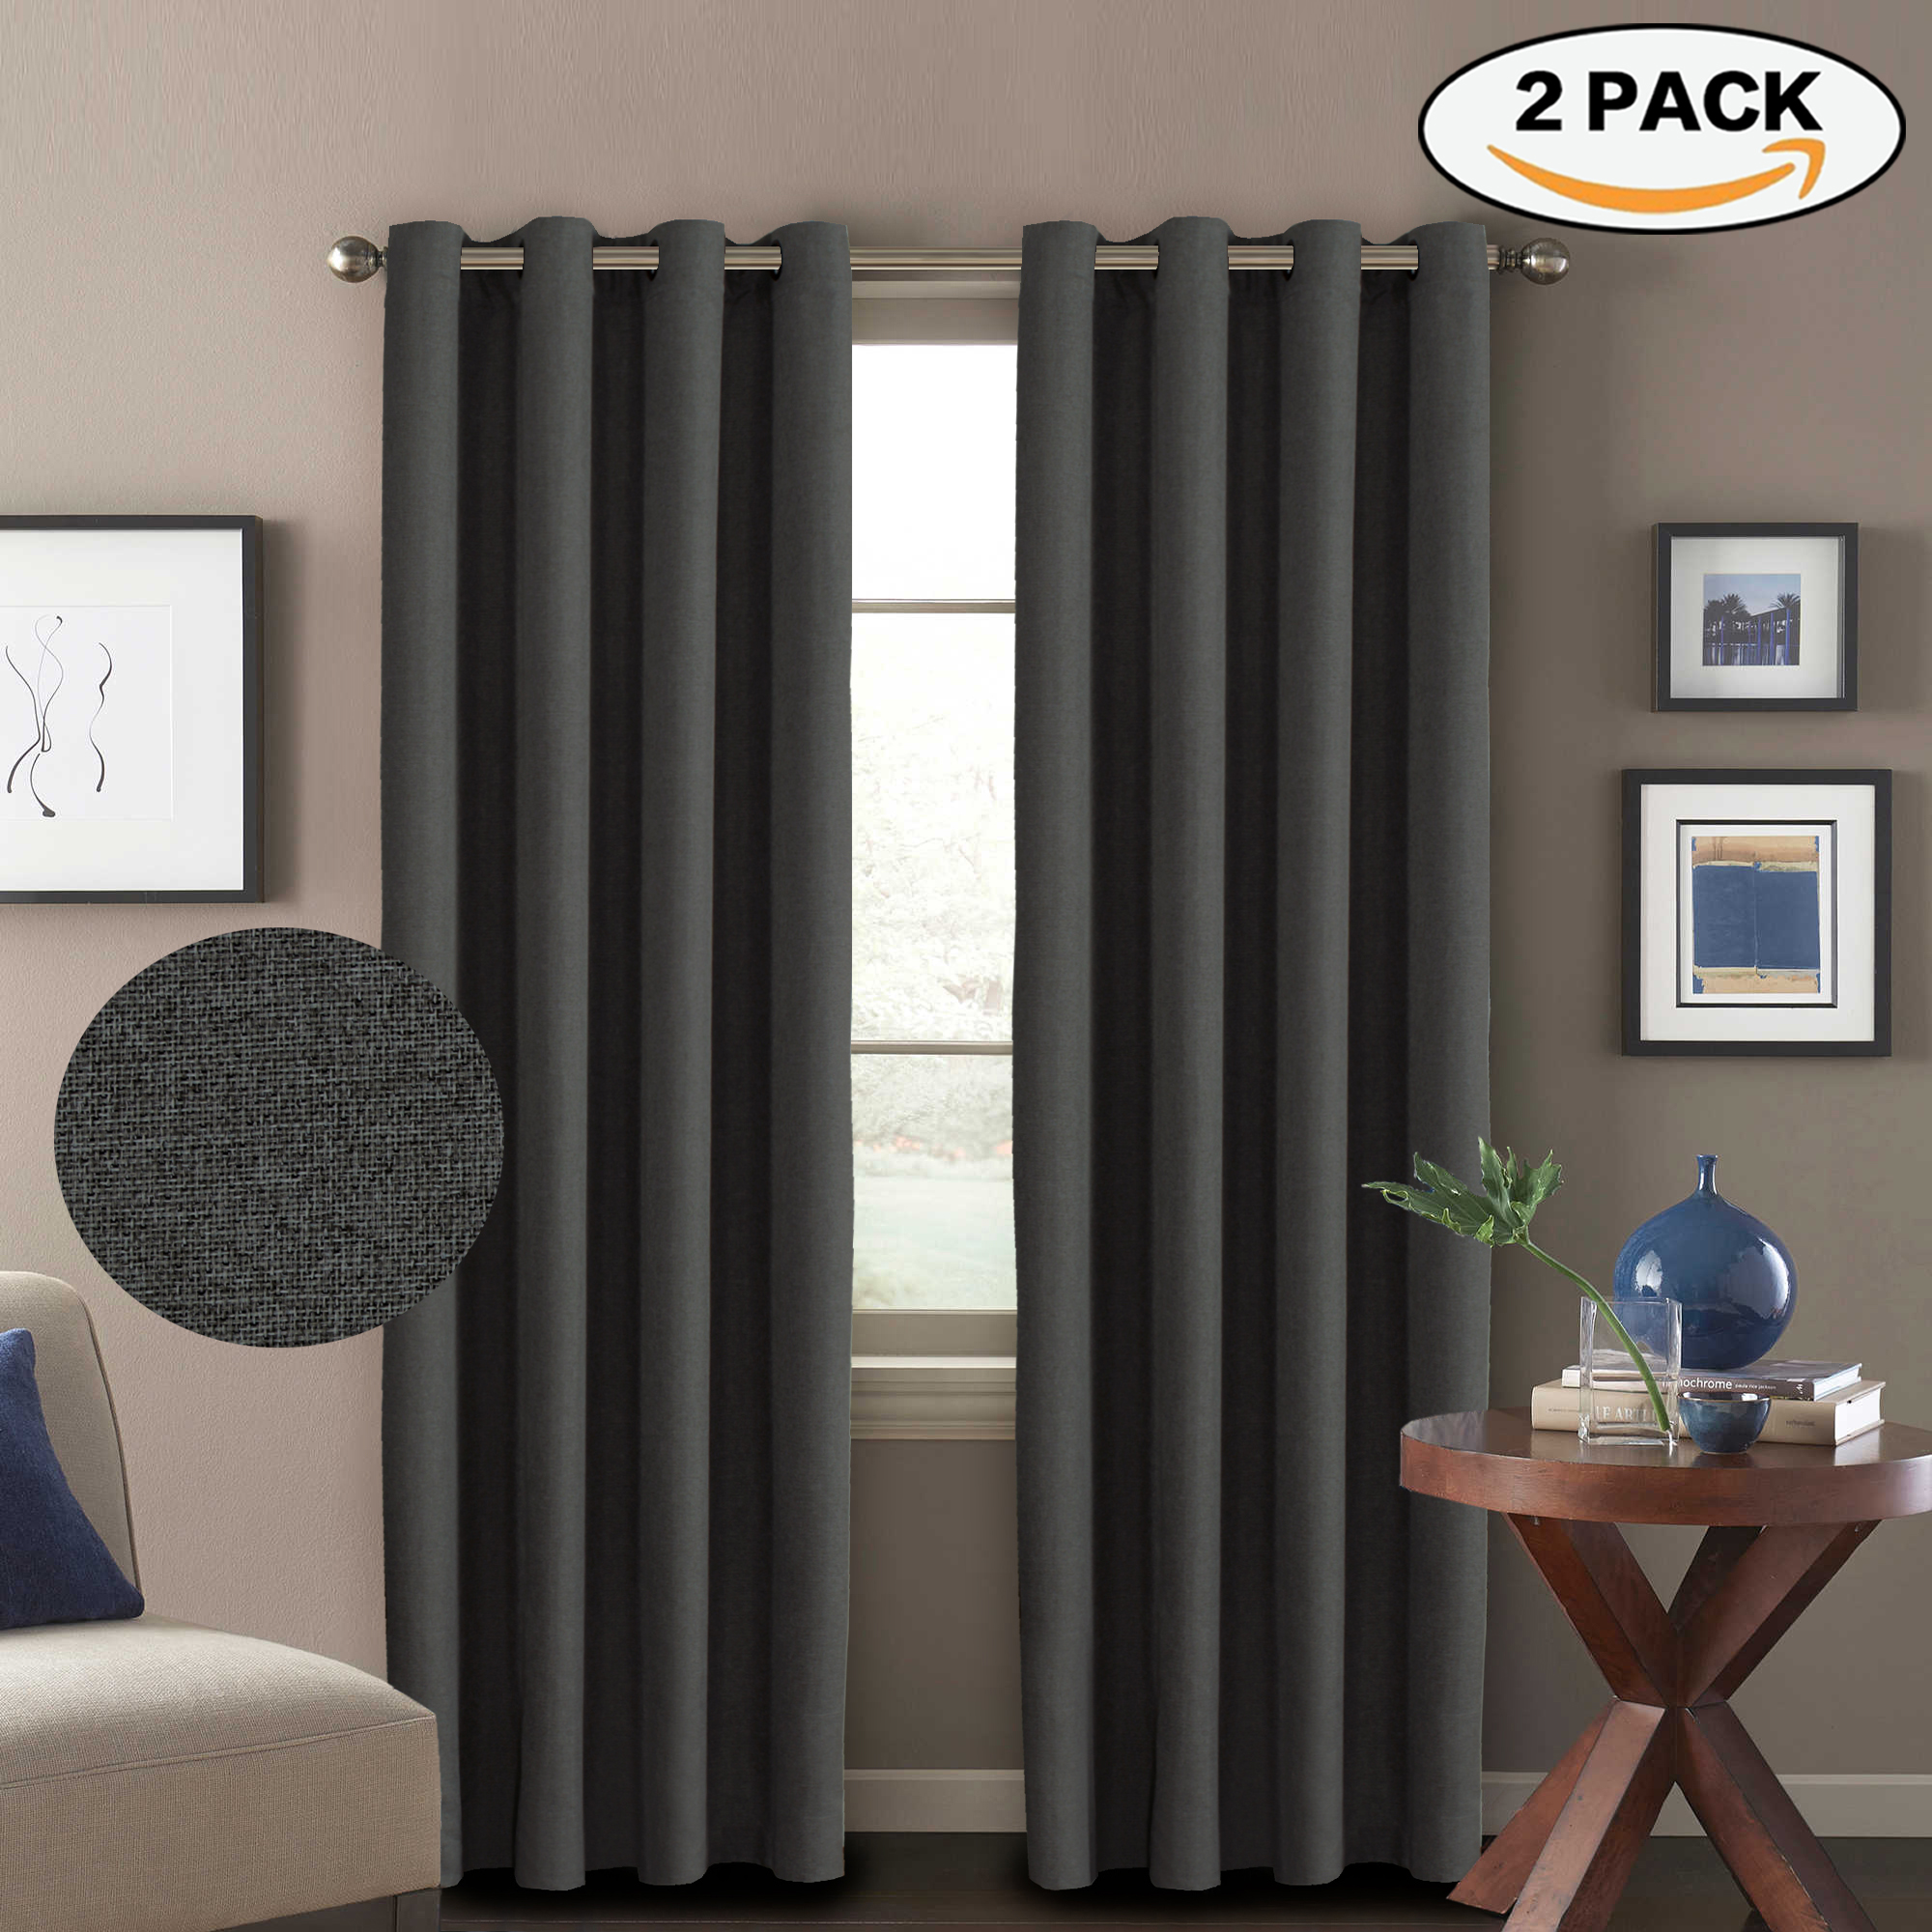 Window Coverings To Keep Heat Out Faux Linen Brown Pair Curtains Thermal Insulated Room Darkening Window Panels Heavy Duty Textured Burlap Effect Grommet Drapes For Bedroom 63 Inch